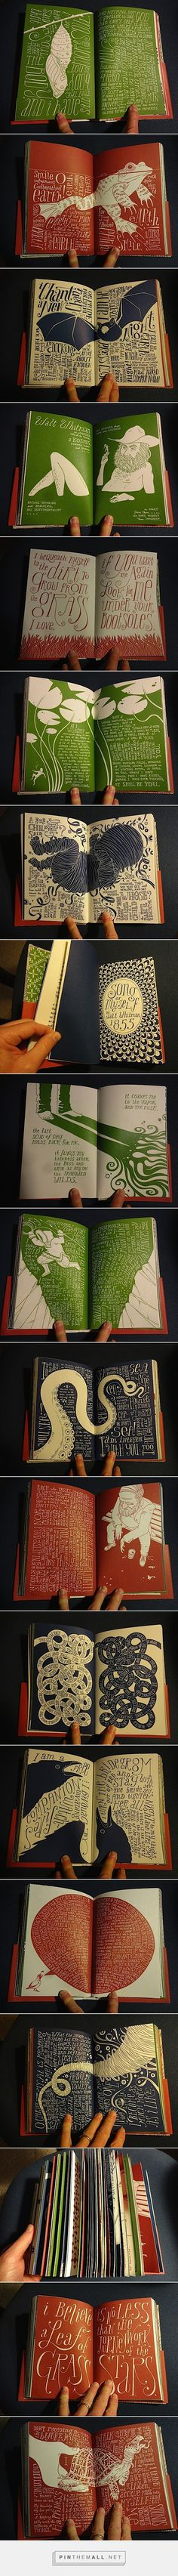 Hand Illustrated Book by Allen Crawford